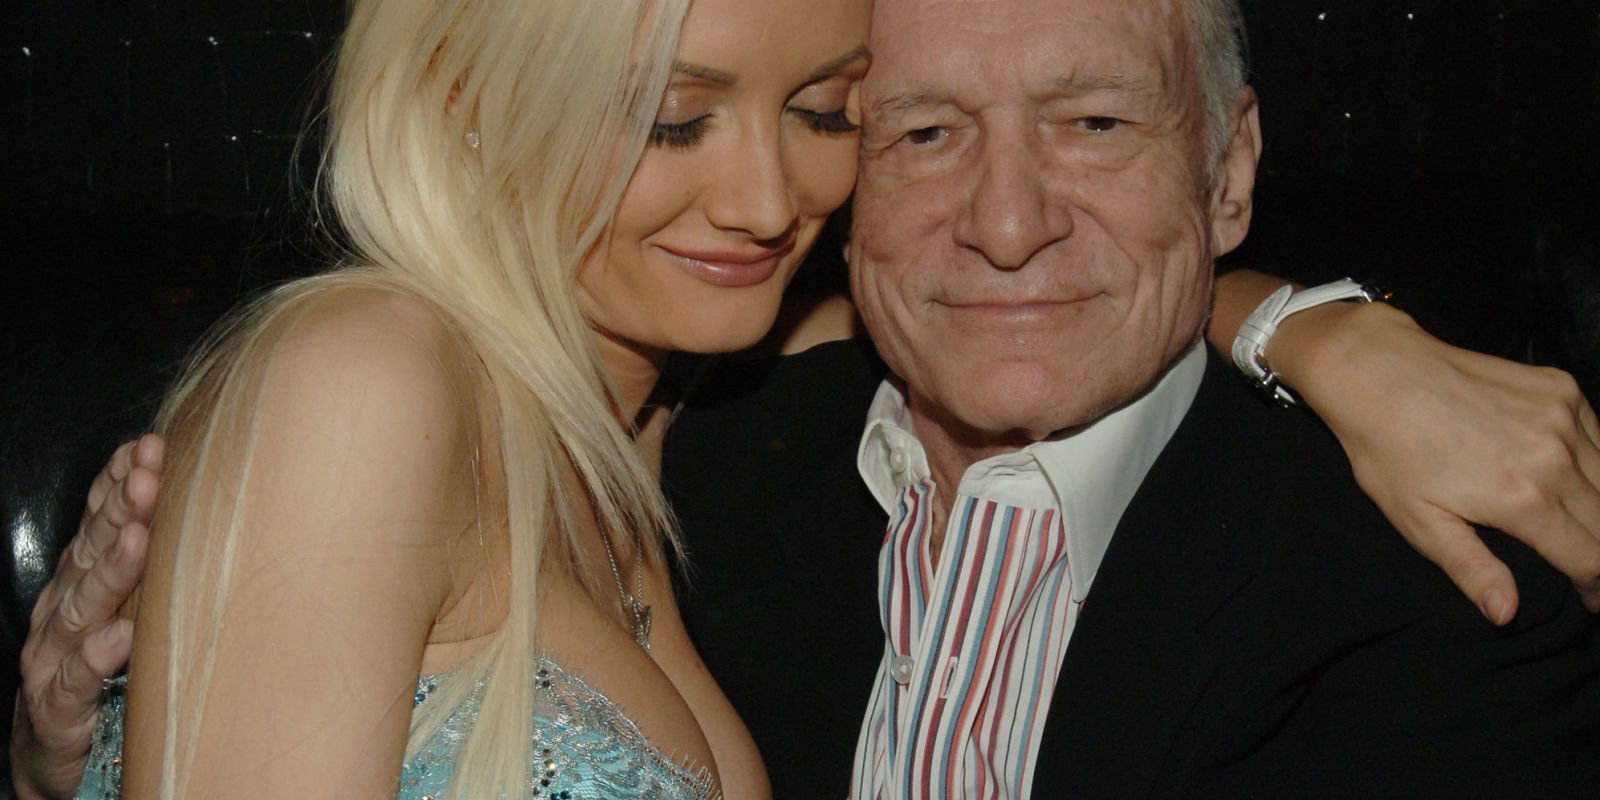 entertainment books news holly madison book worst things about hugh hefner